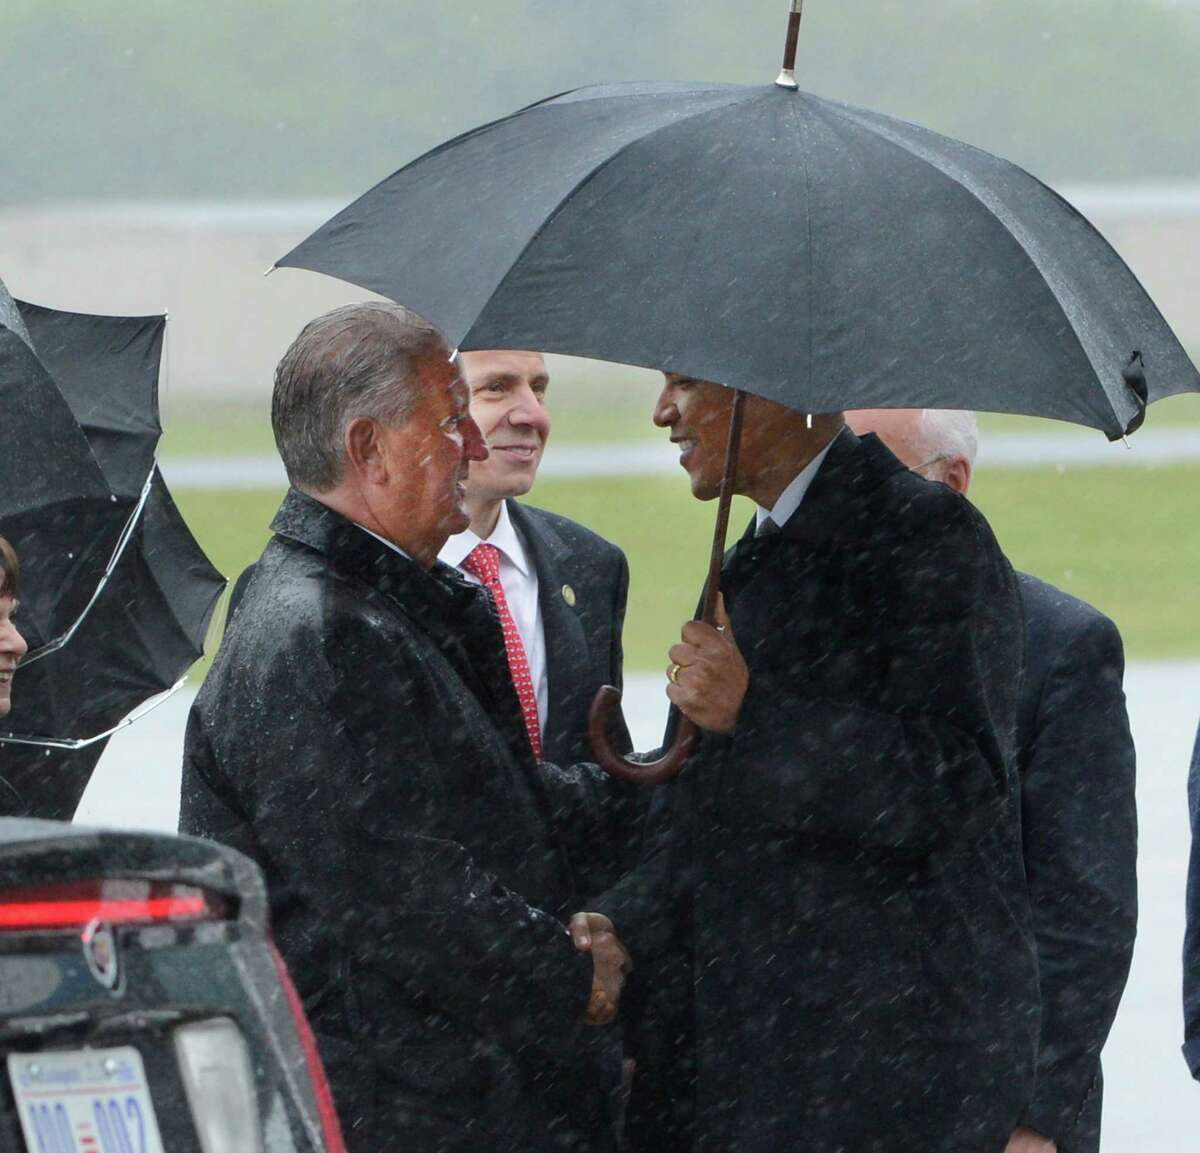 President Barack Obama is greeted by Albany Mayor Jerry Jennings as he arrives Tuesday at Albany International Airport. (Skip Dickstein / Times Union)